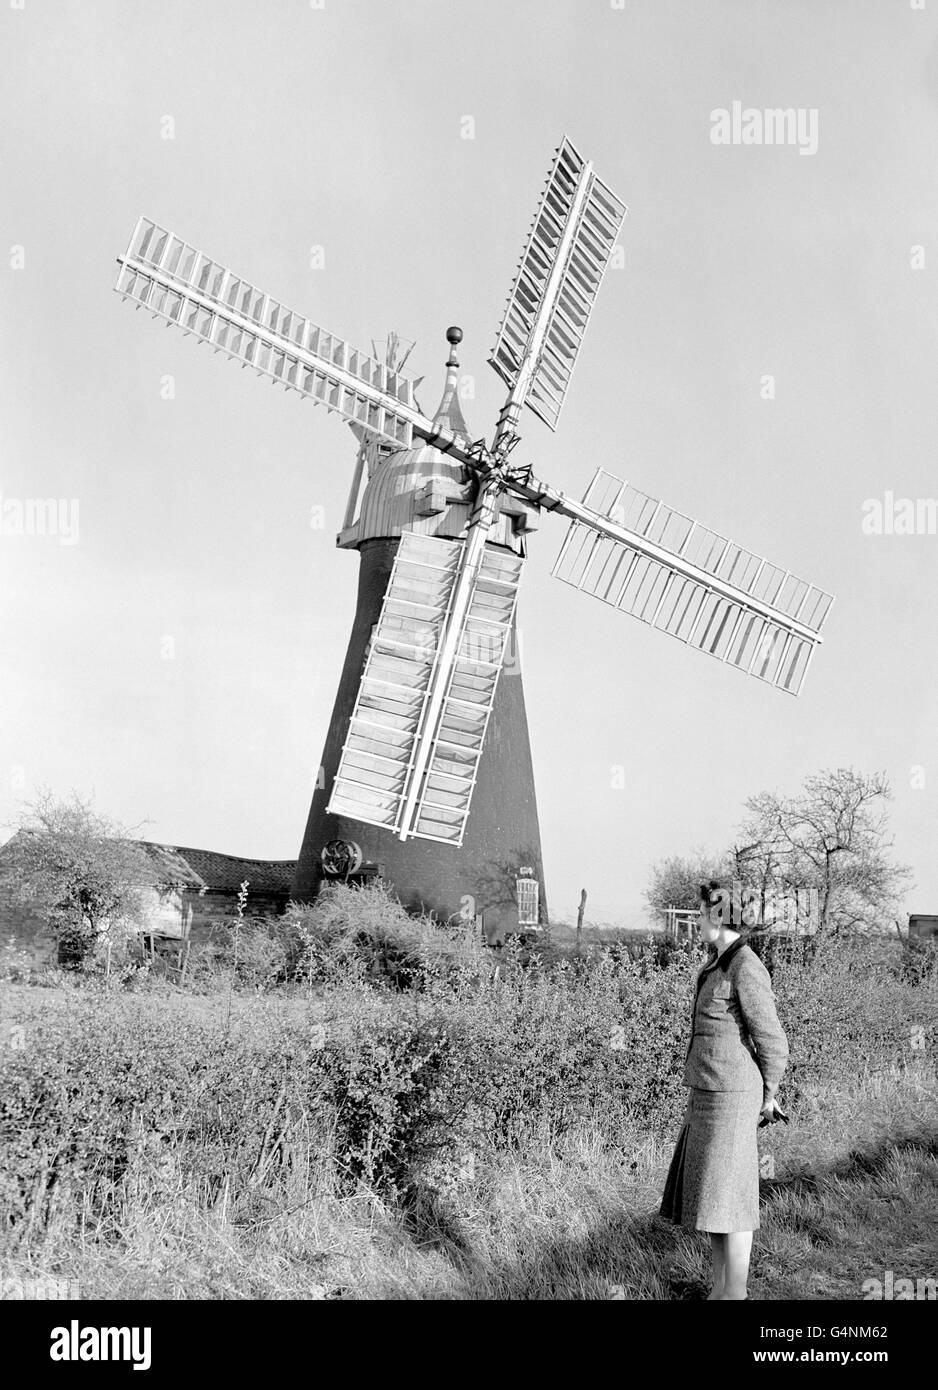 Buildings and Landmarks - Windmills - North Leverton - Stock Image